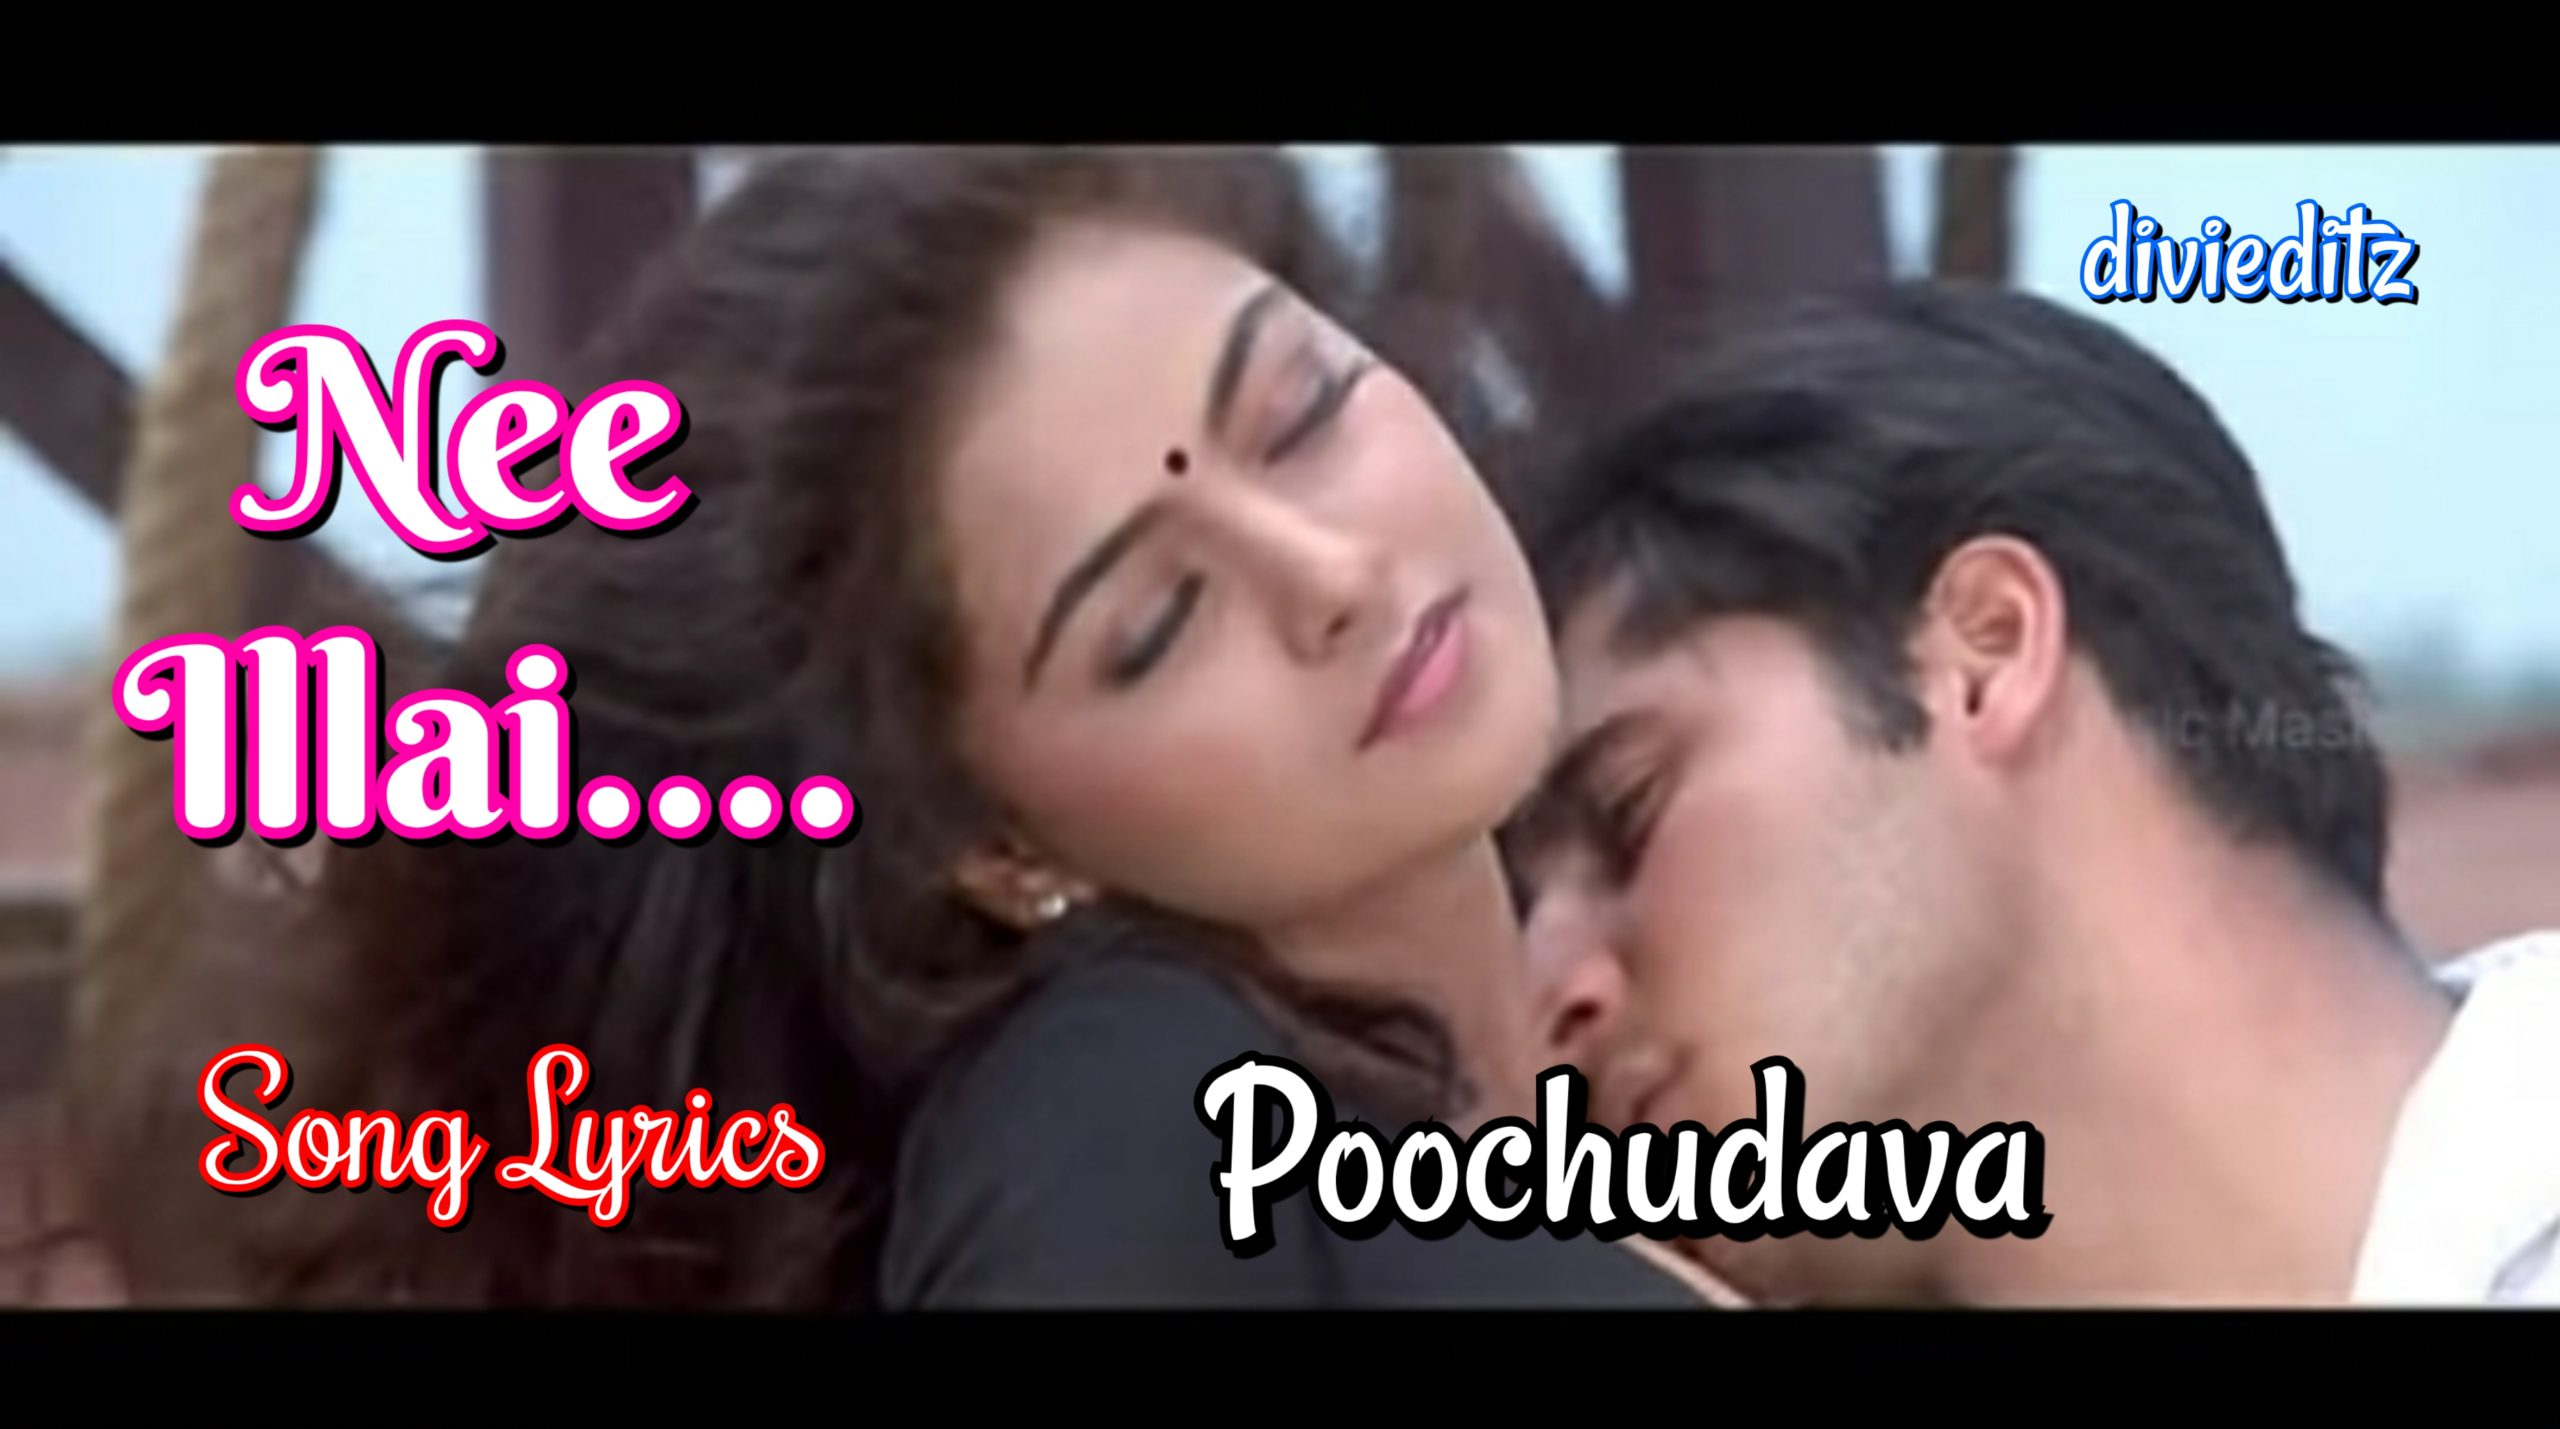 Nee Illai Nilavillai Song Lyrics – Poochudava